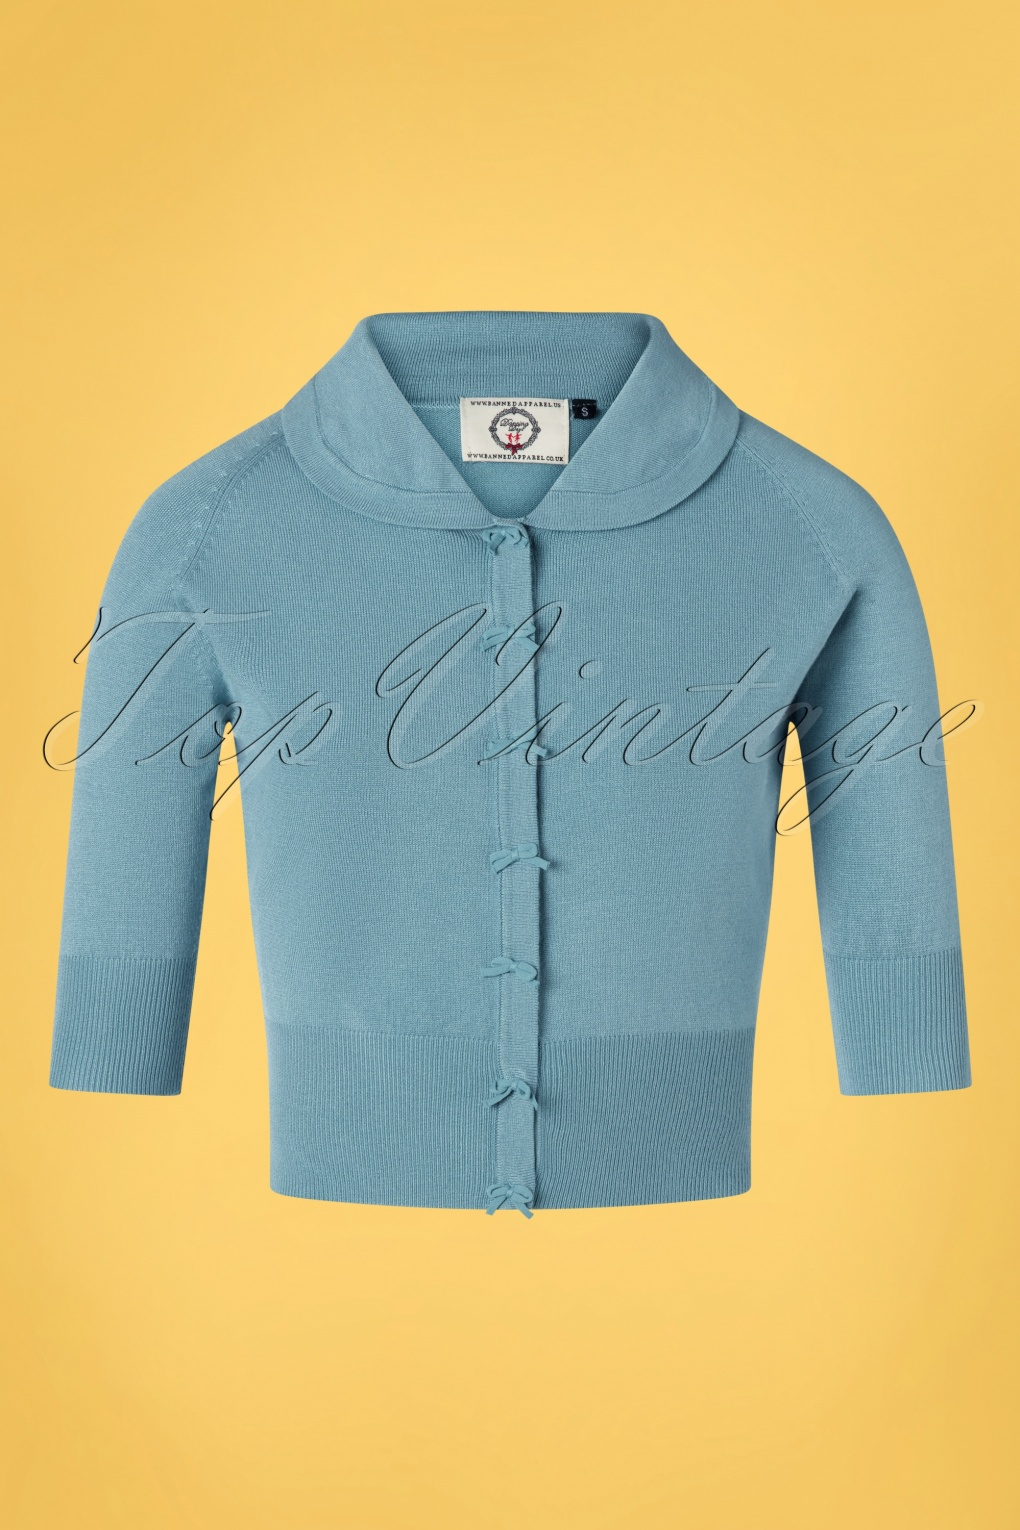 1940s Sweater Styles 40s April Bow Cardigan in Baby Blue £33.30 AT vintagedancer.com